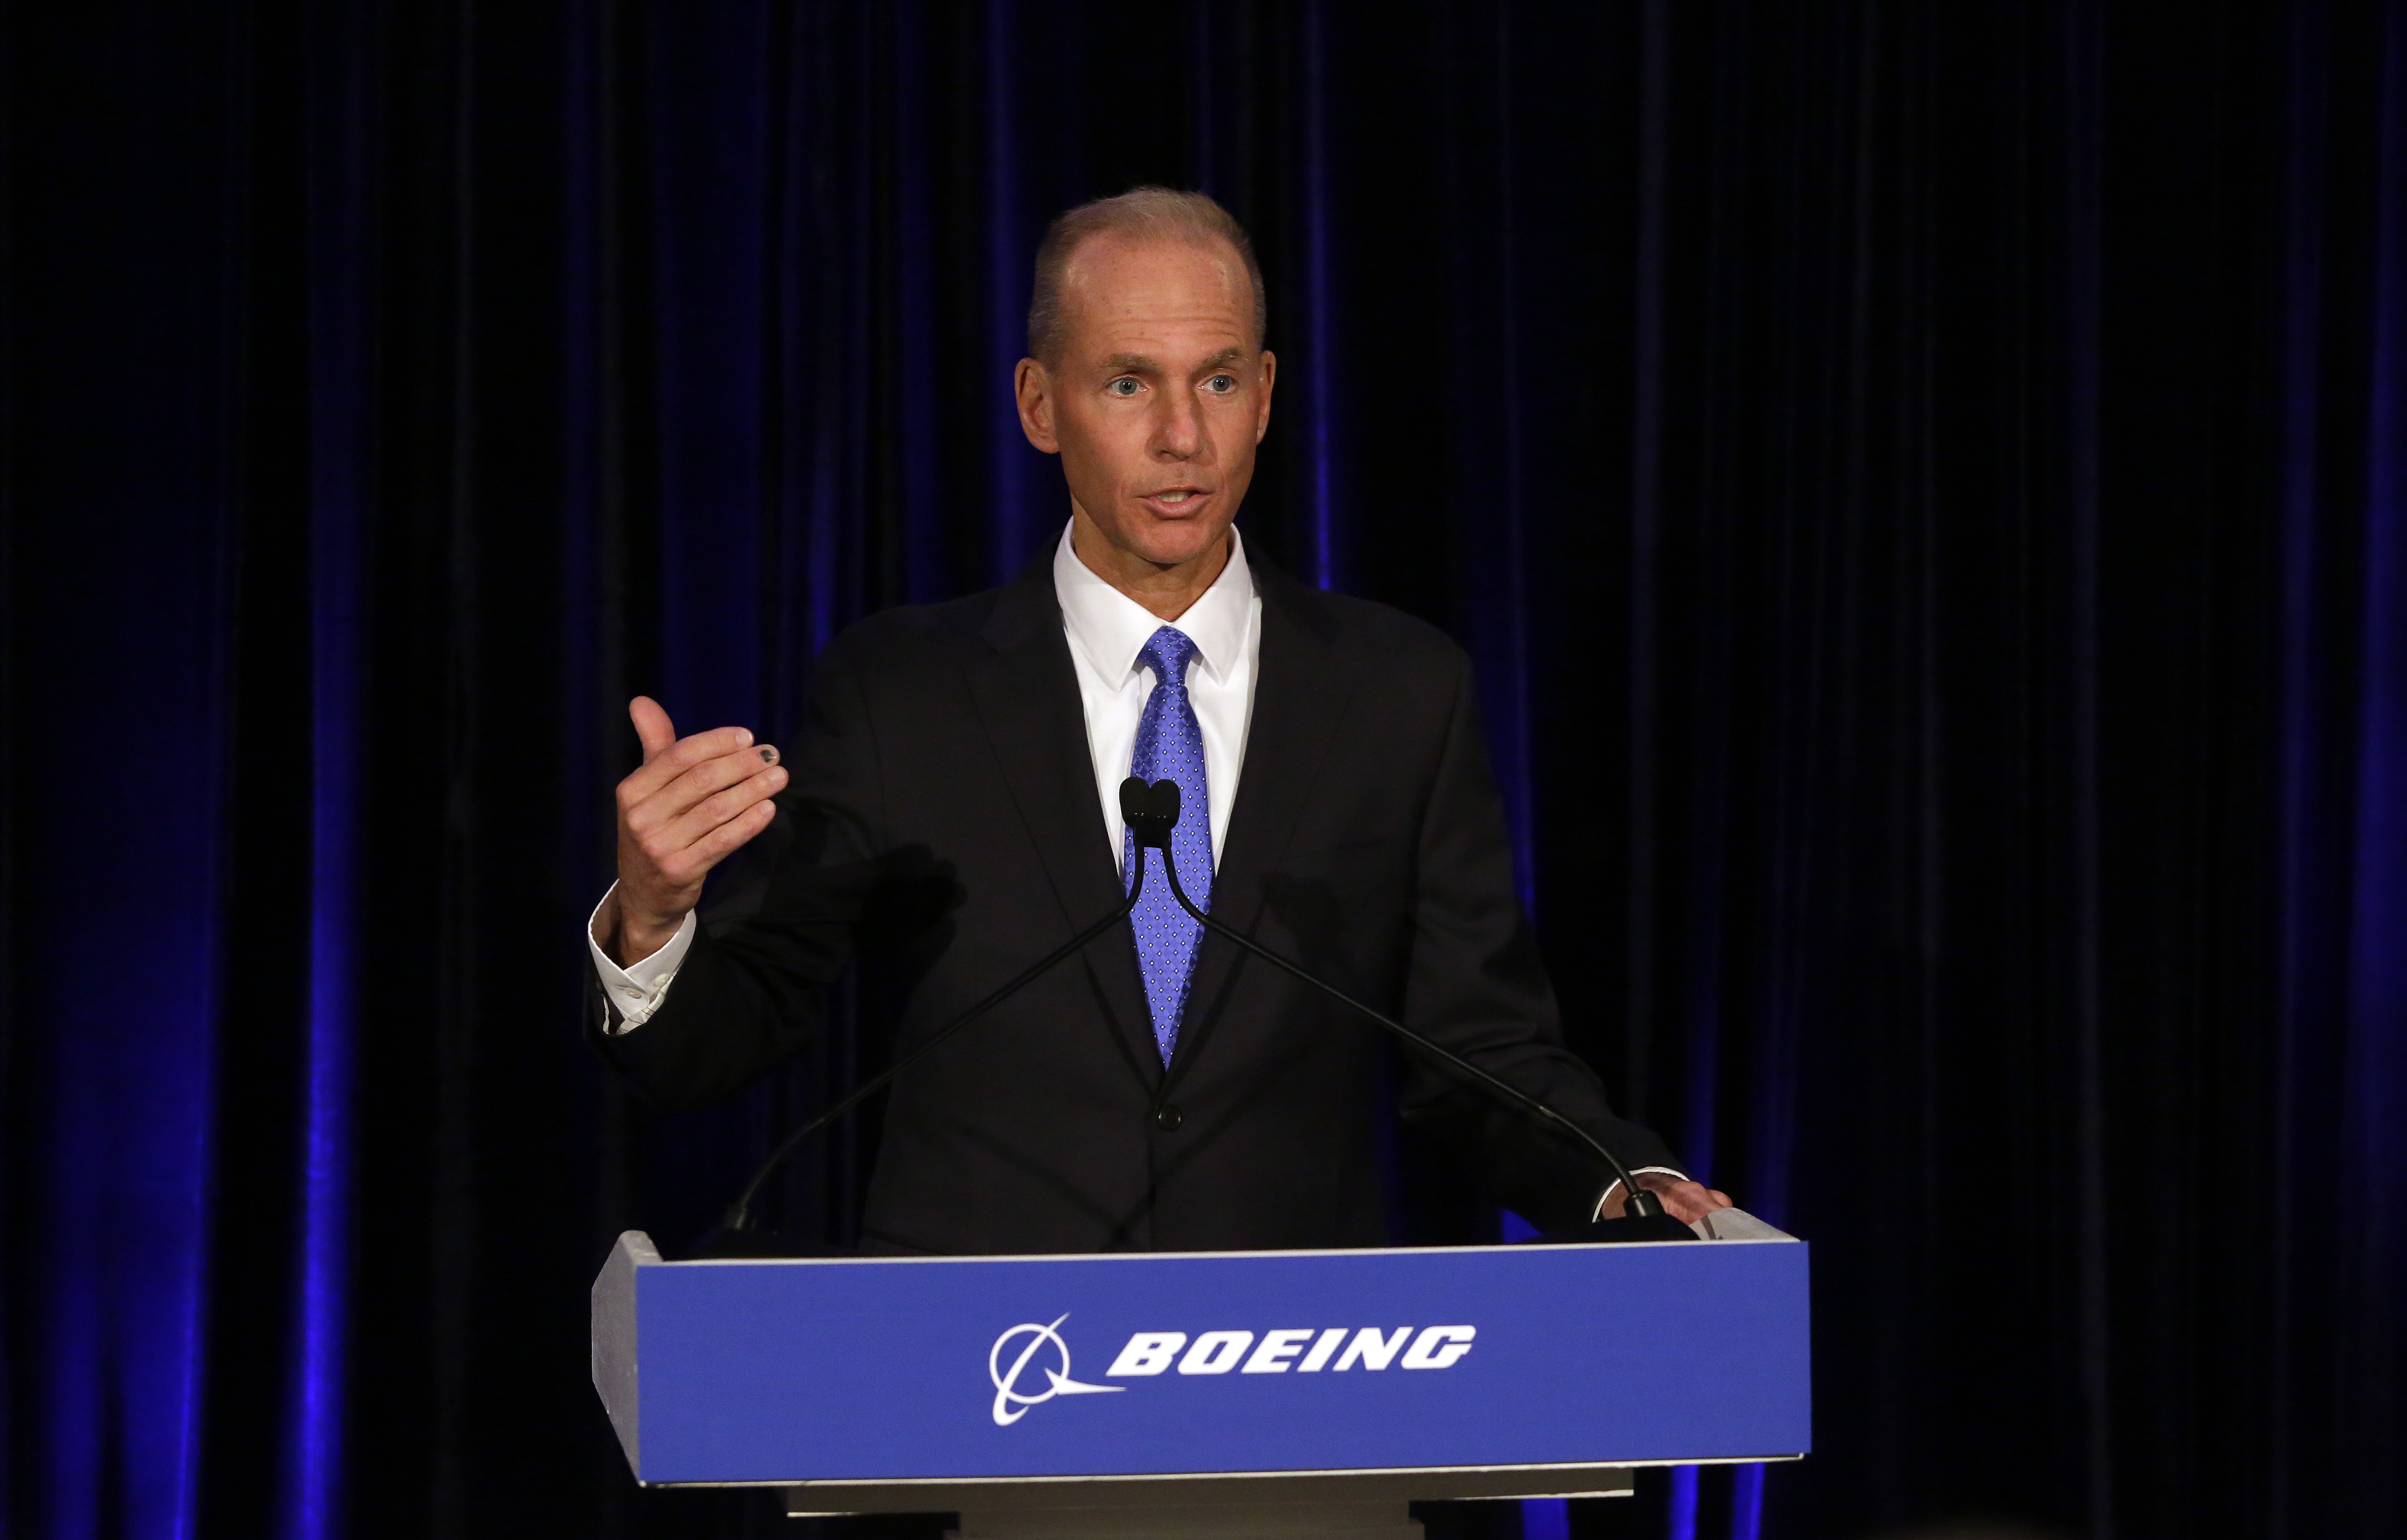 Boeing's Chairman, President and CEO Dennis Muilenburg speaks during a news conference after Boeing's Annual Meeting of Shareholders at the Field Museum on April 29, 2019 in Chicago, Illinois. (Photo by Joshua Lott-Pool/Getty Images)